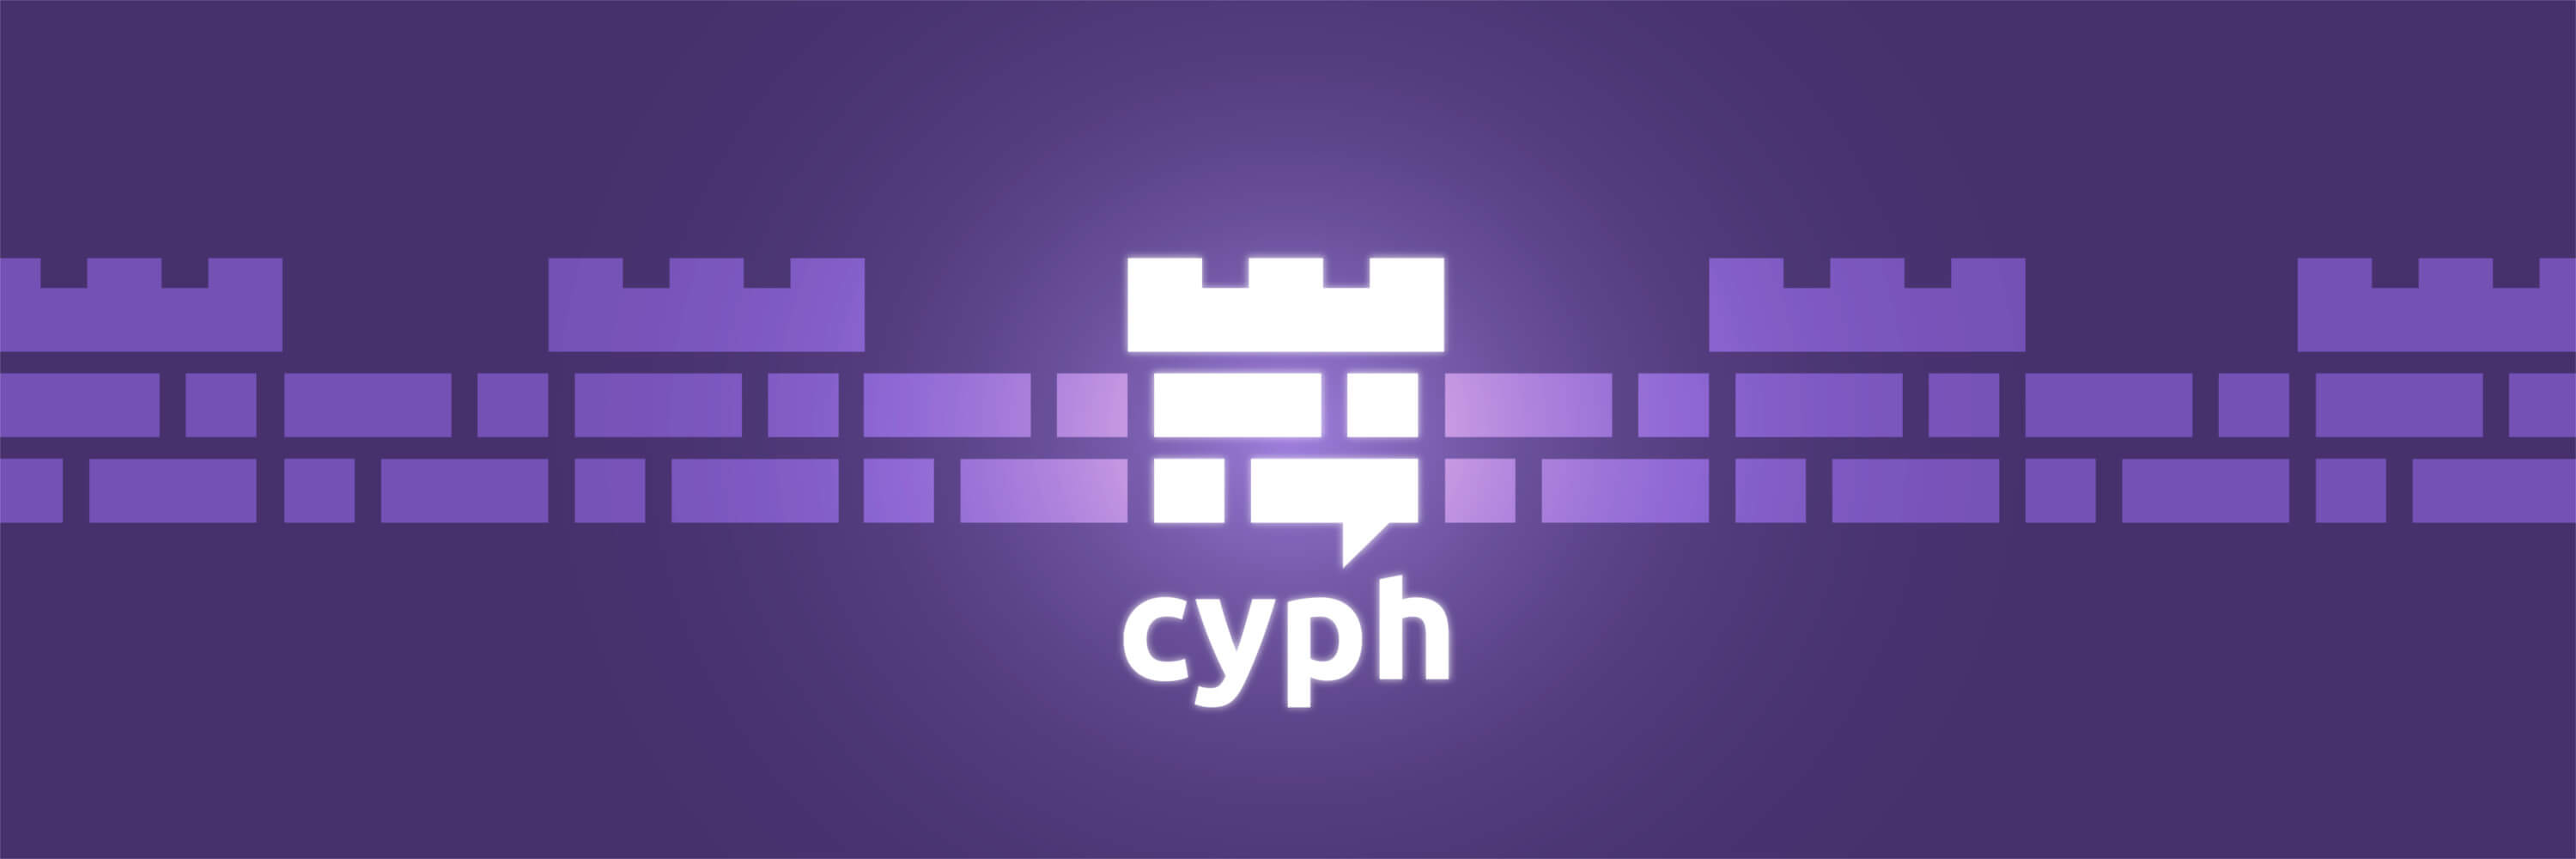 Cyph Becomes First Tor Service to be Issued EV SSL Cert